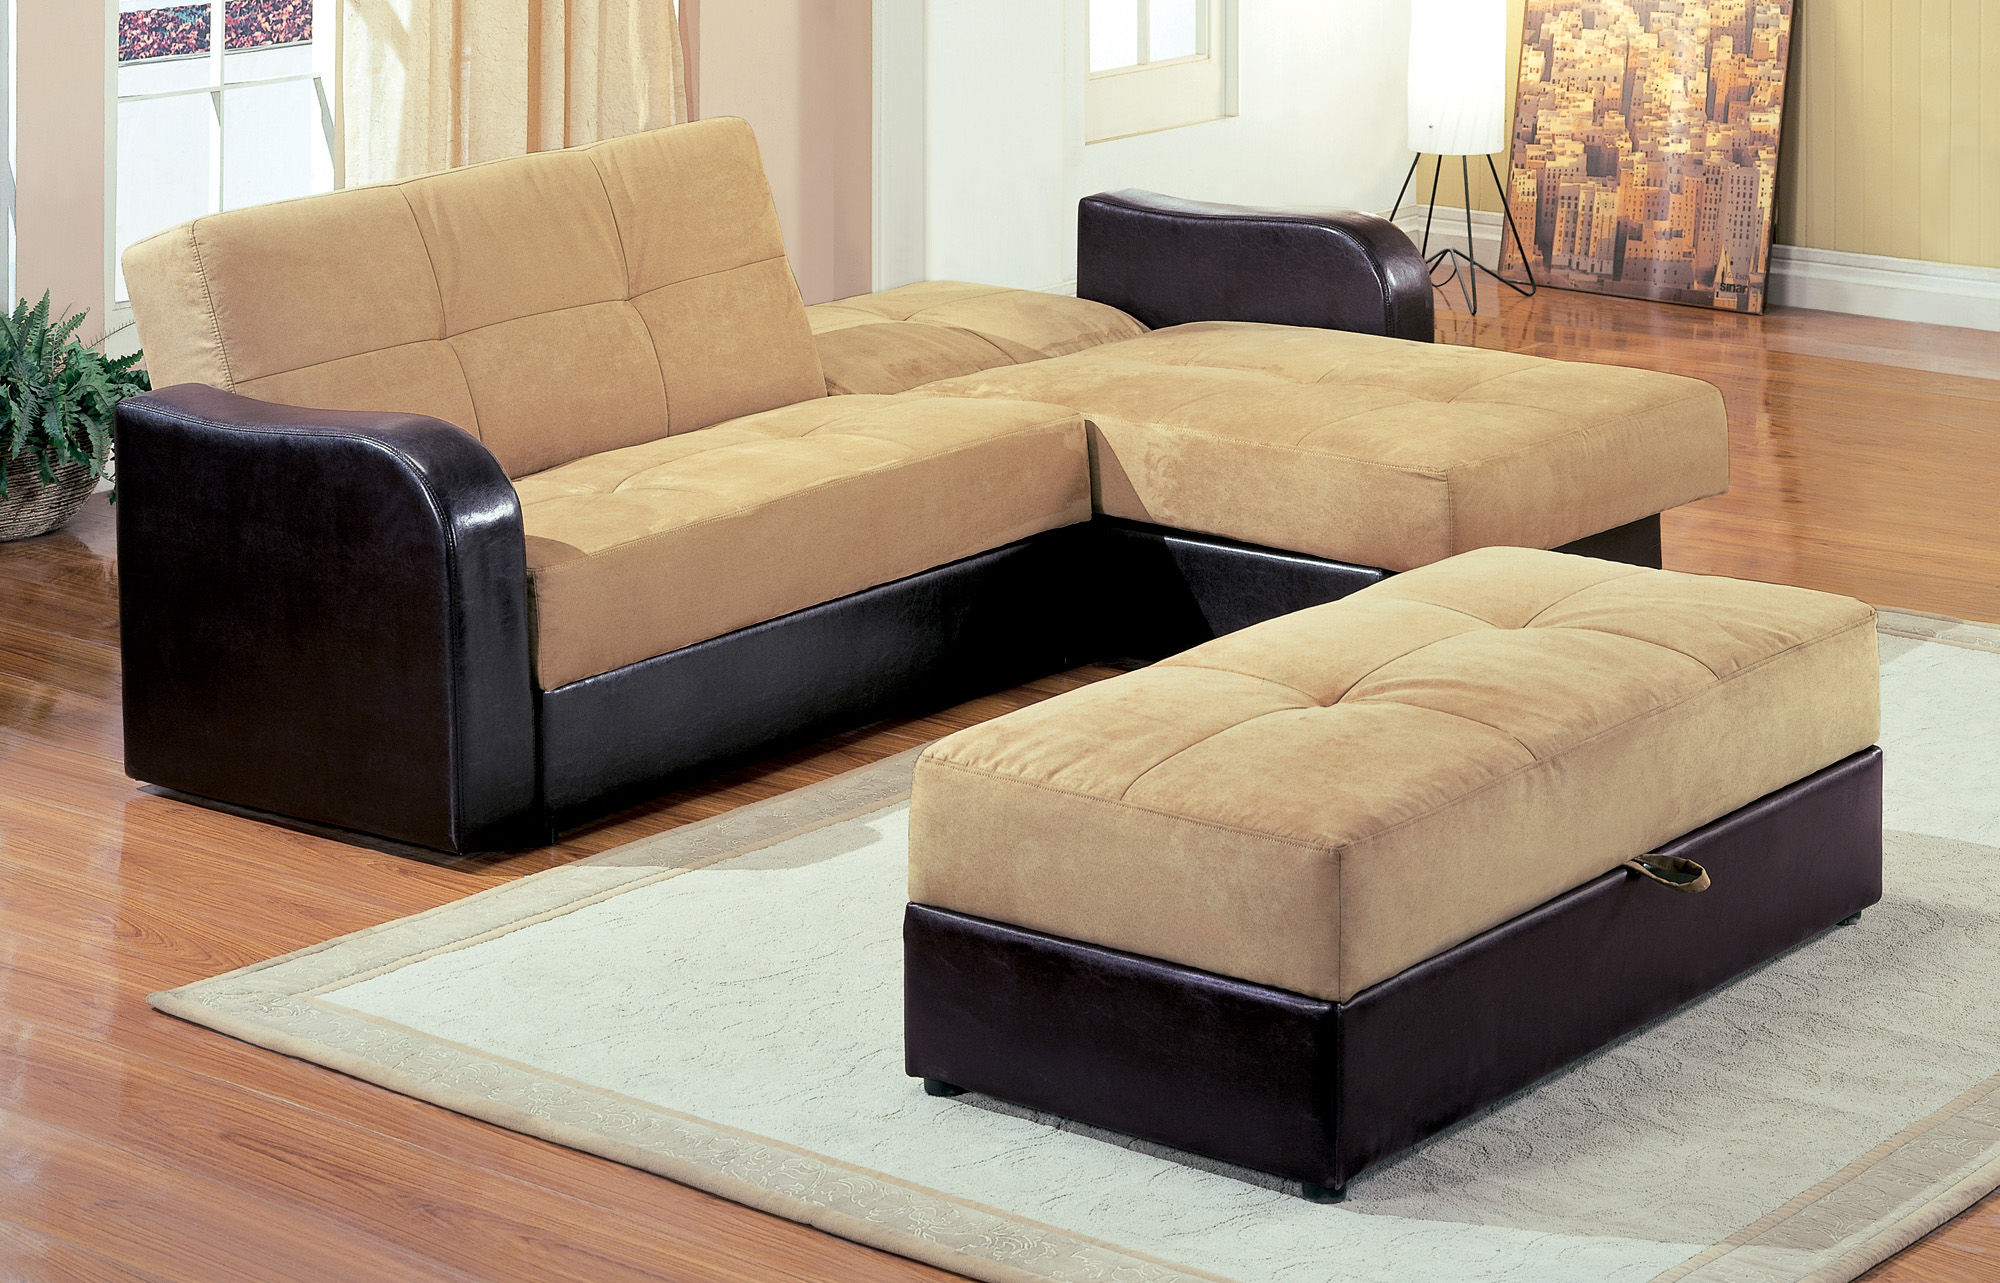 wonderful bed sofa couch inspiration-Fresh Bed sofa Couch Layout